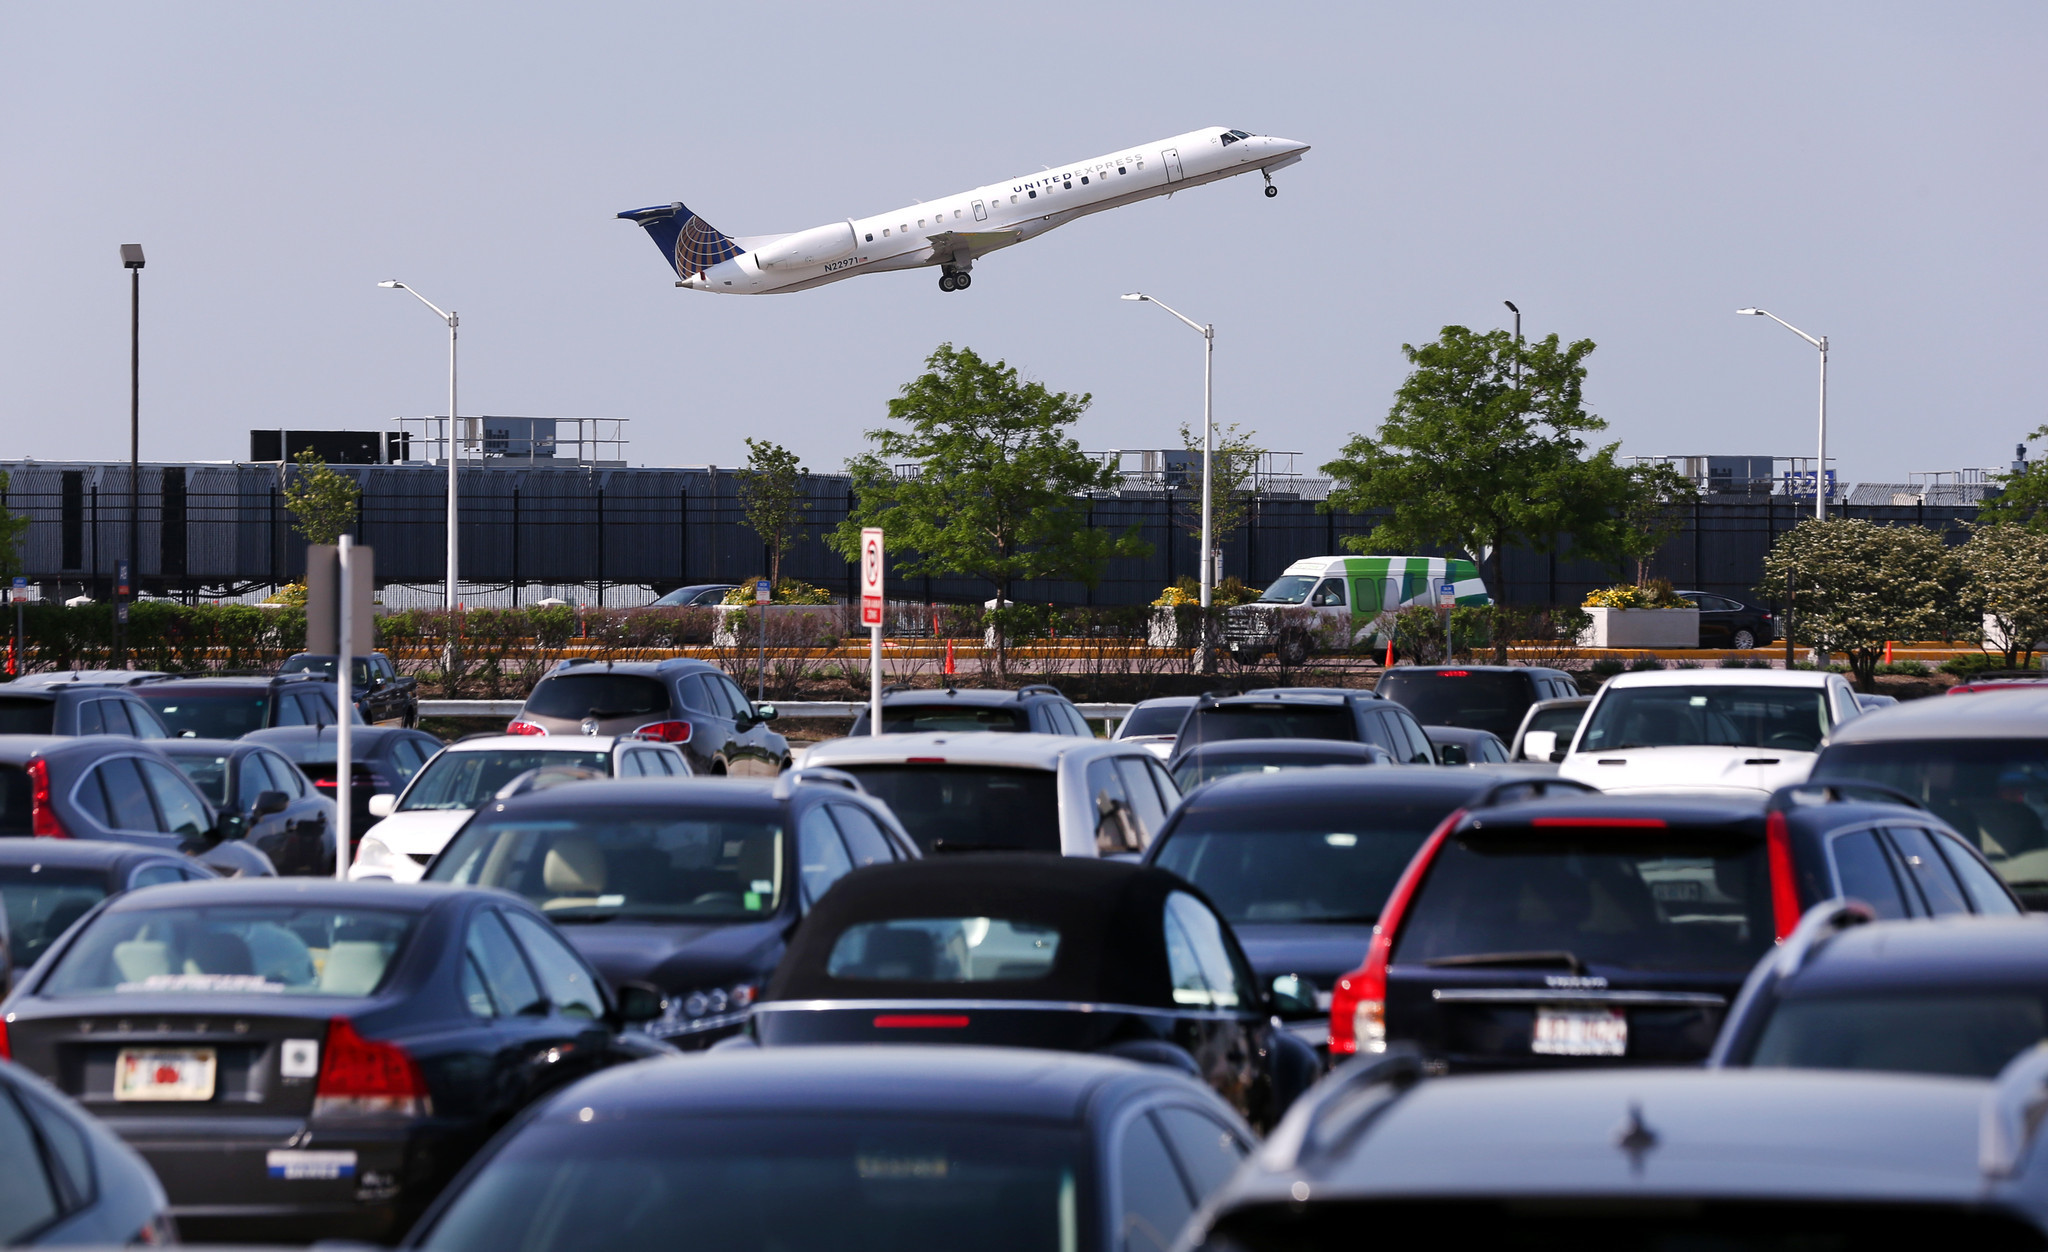 Remarkable tips for the airport parking in Melbourne